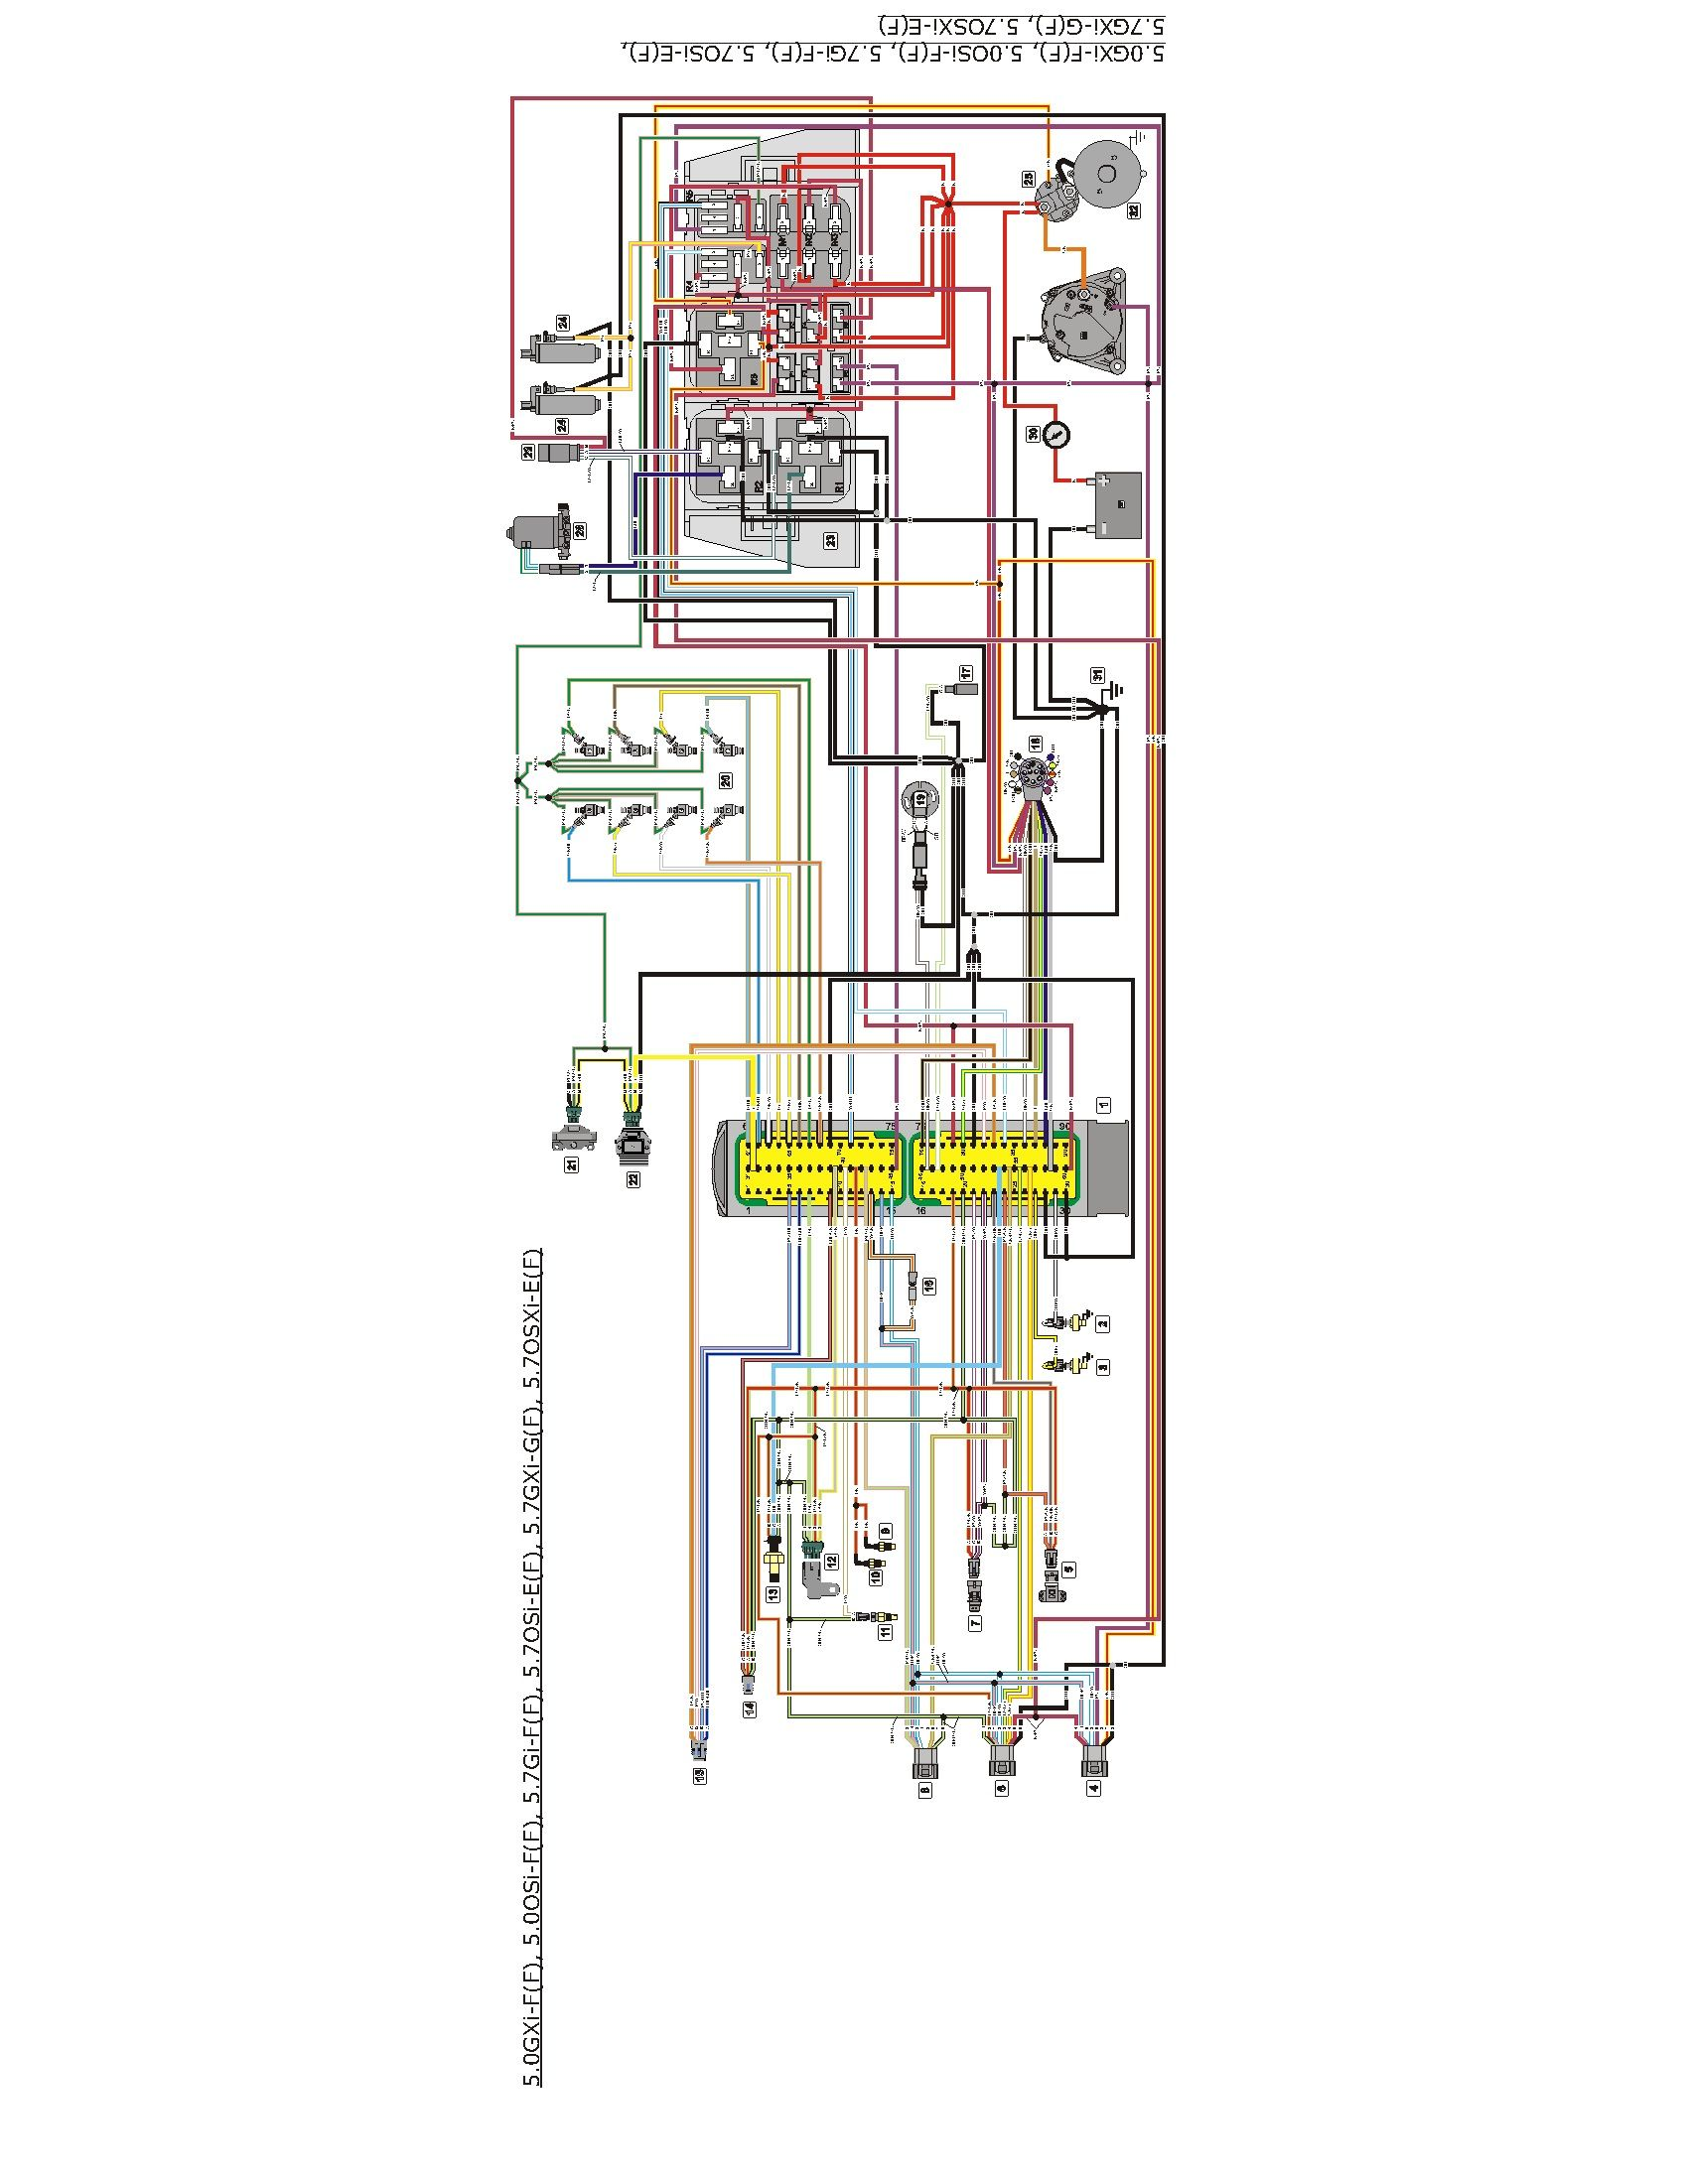 Superb Volvo S60 Wiring Diagram Basic Electronics Wiring Diagram Wiring Cloud Lukepaidewilluminateatxorg